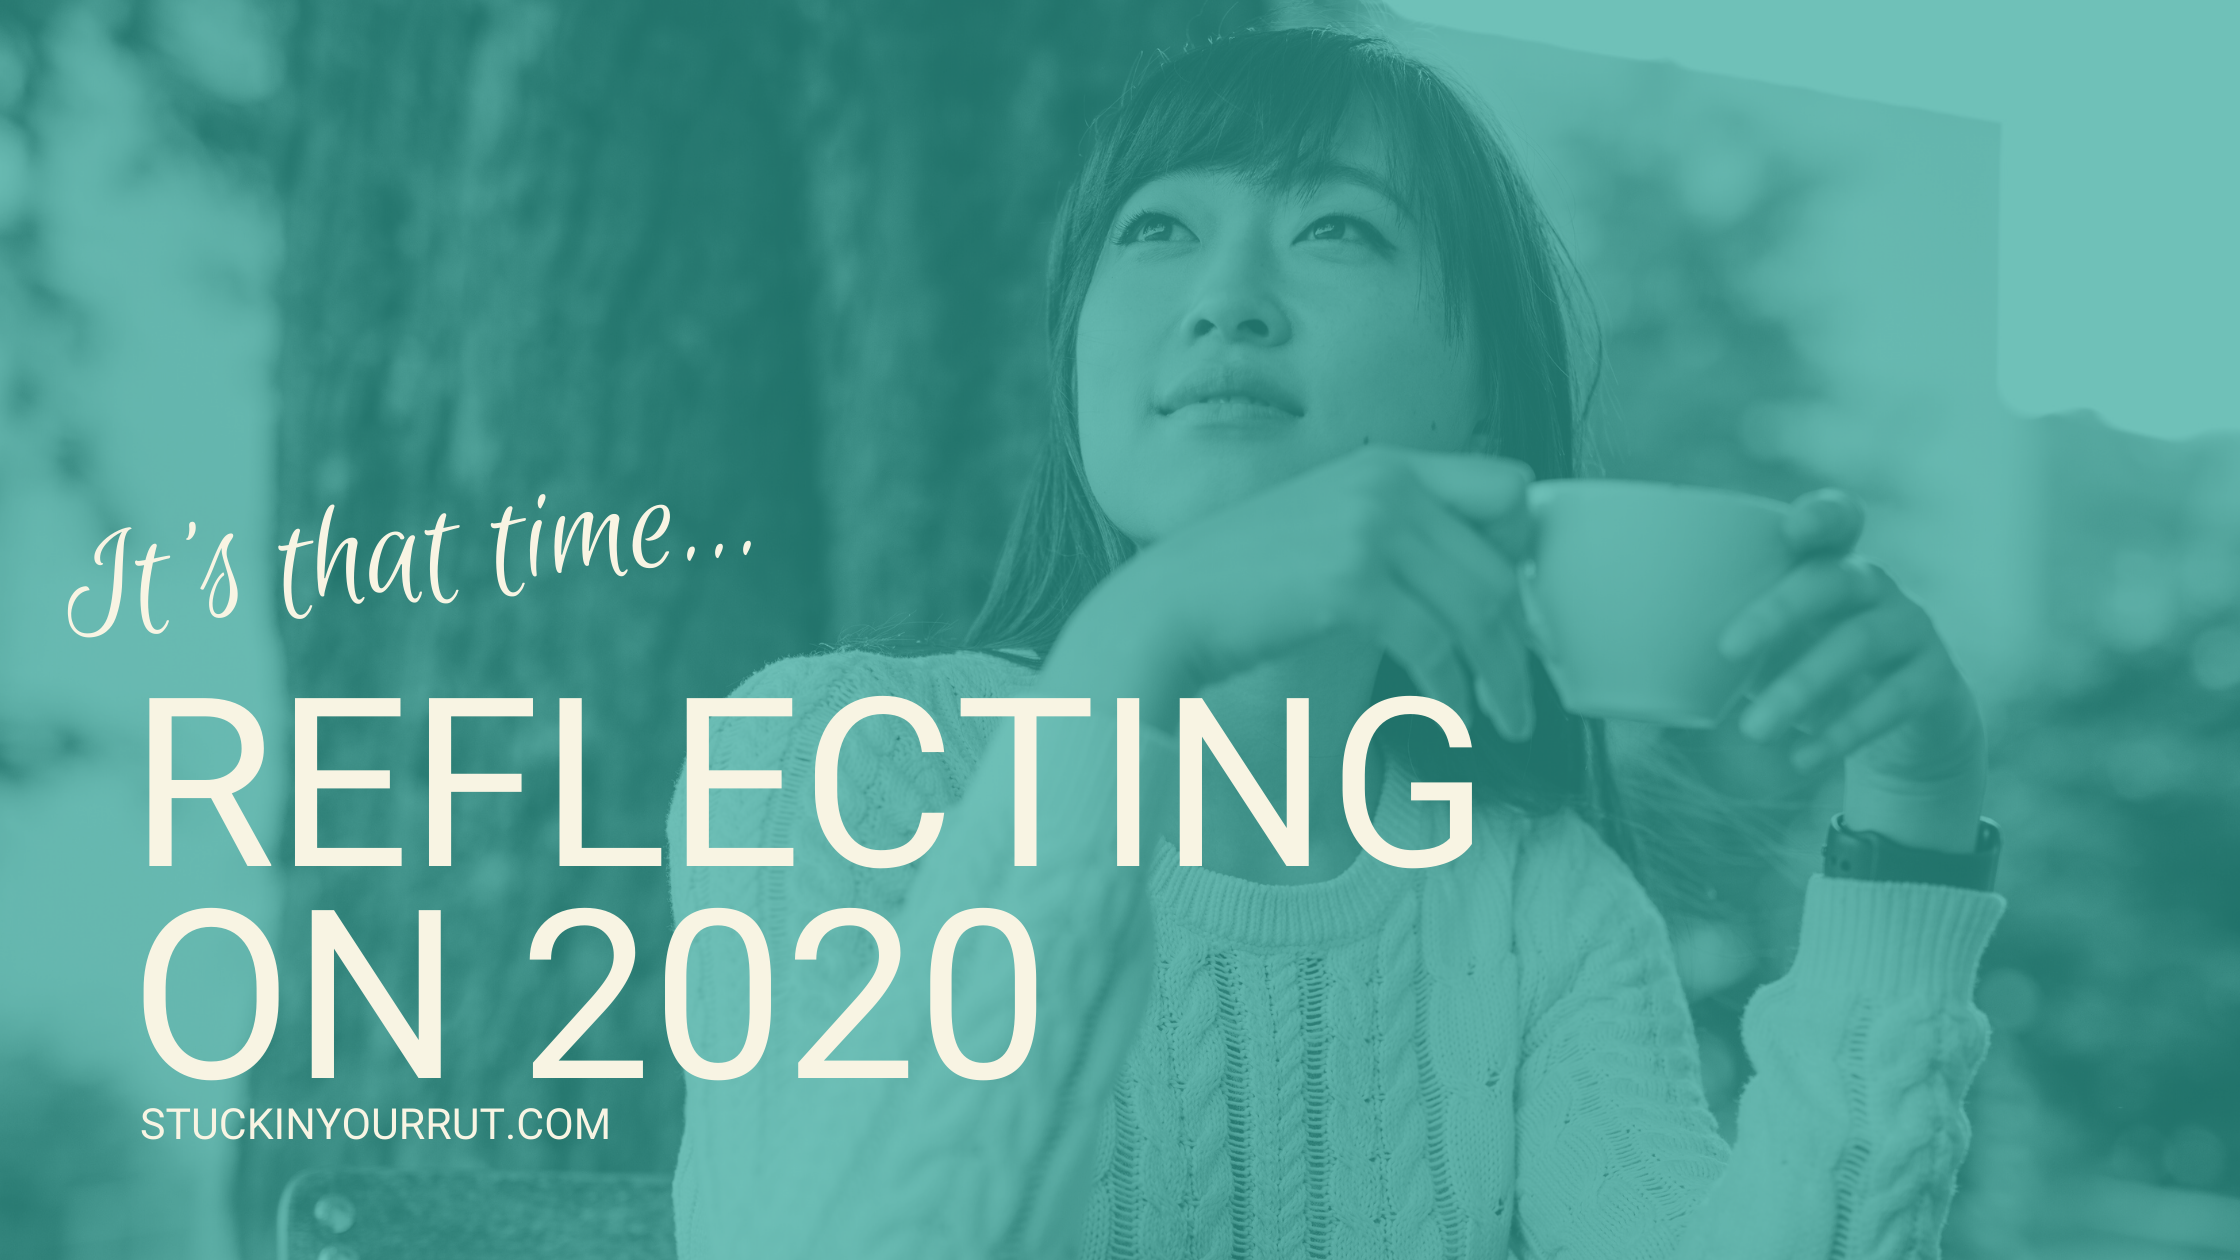 How to Reflect on 2020 with the Right Mindset